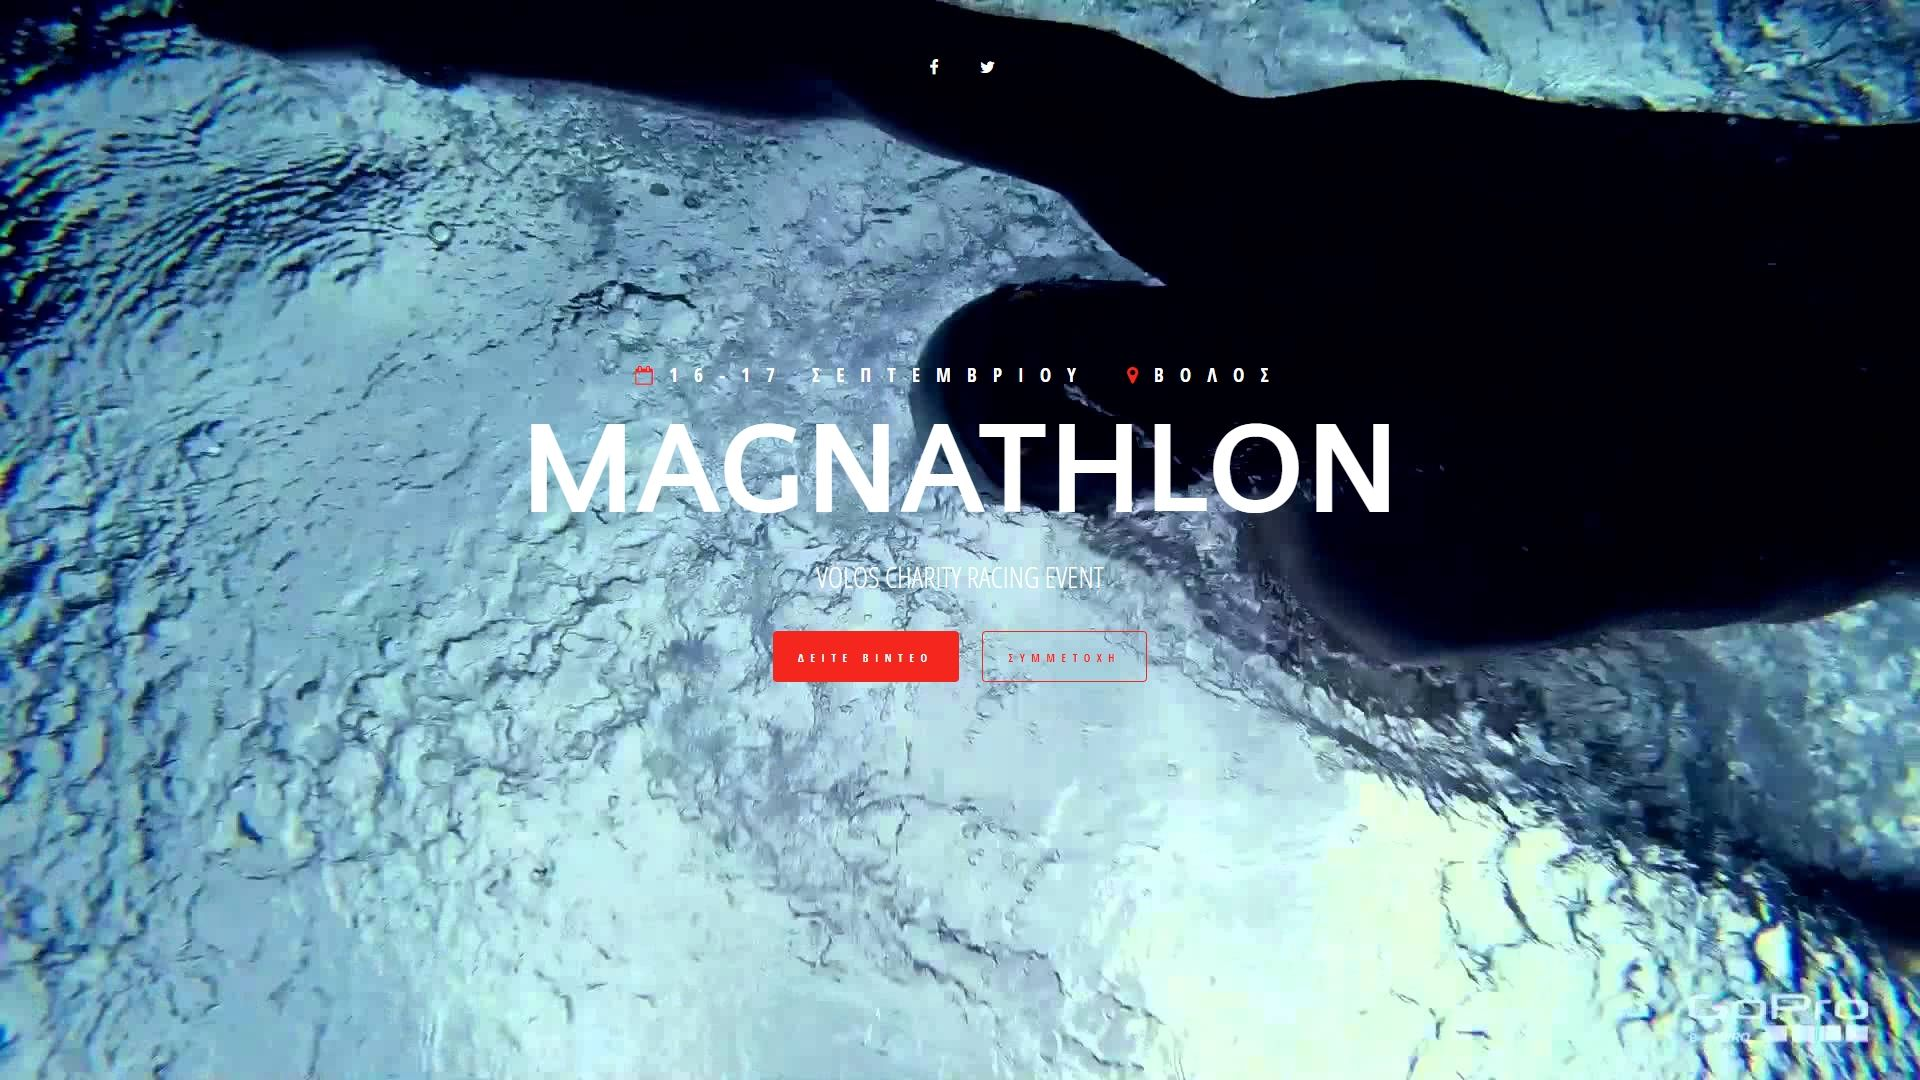 Our Works - Magnathlon.com